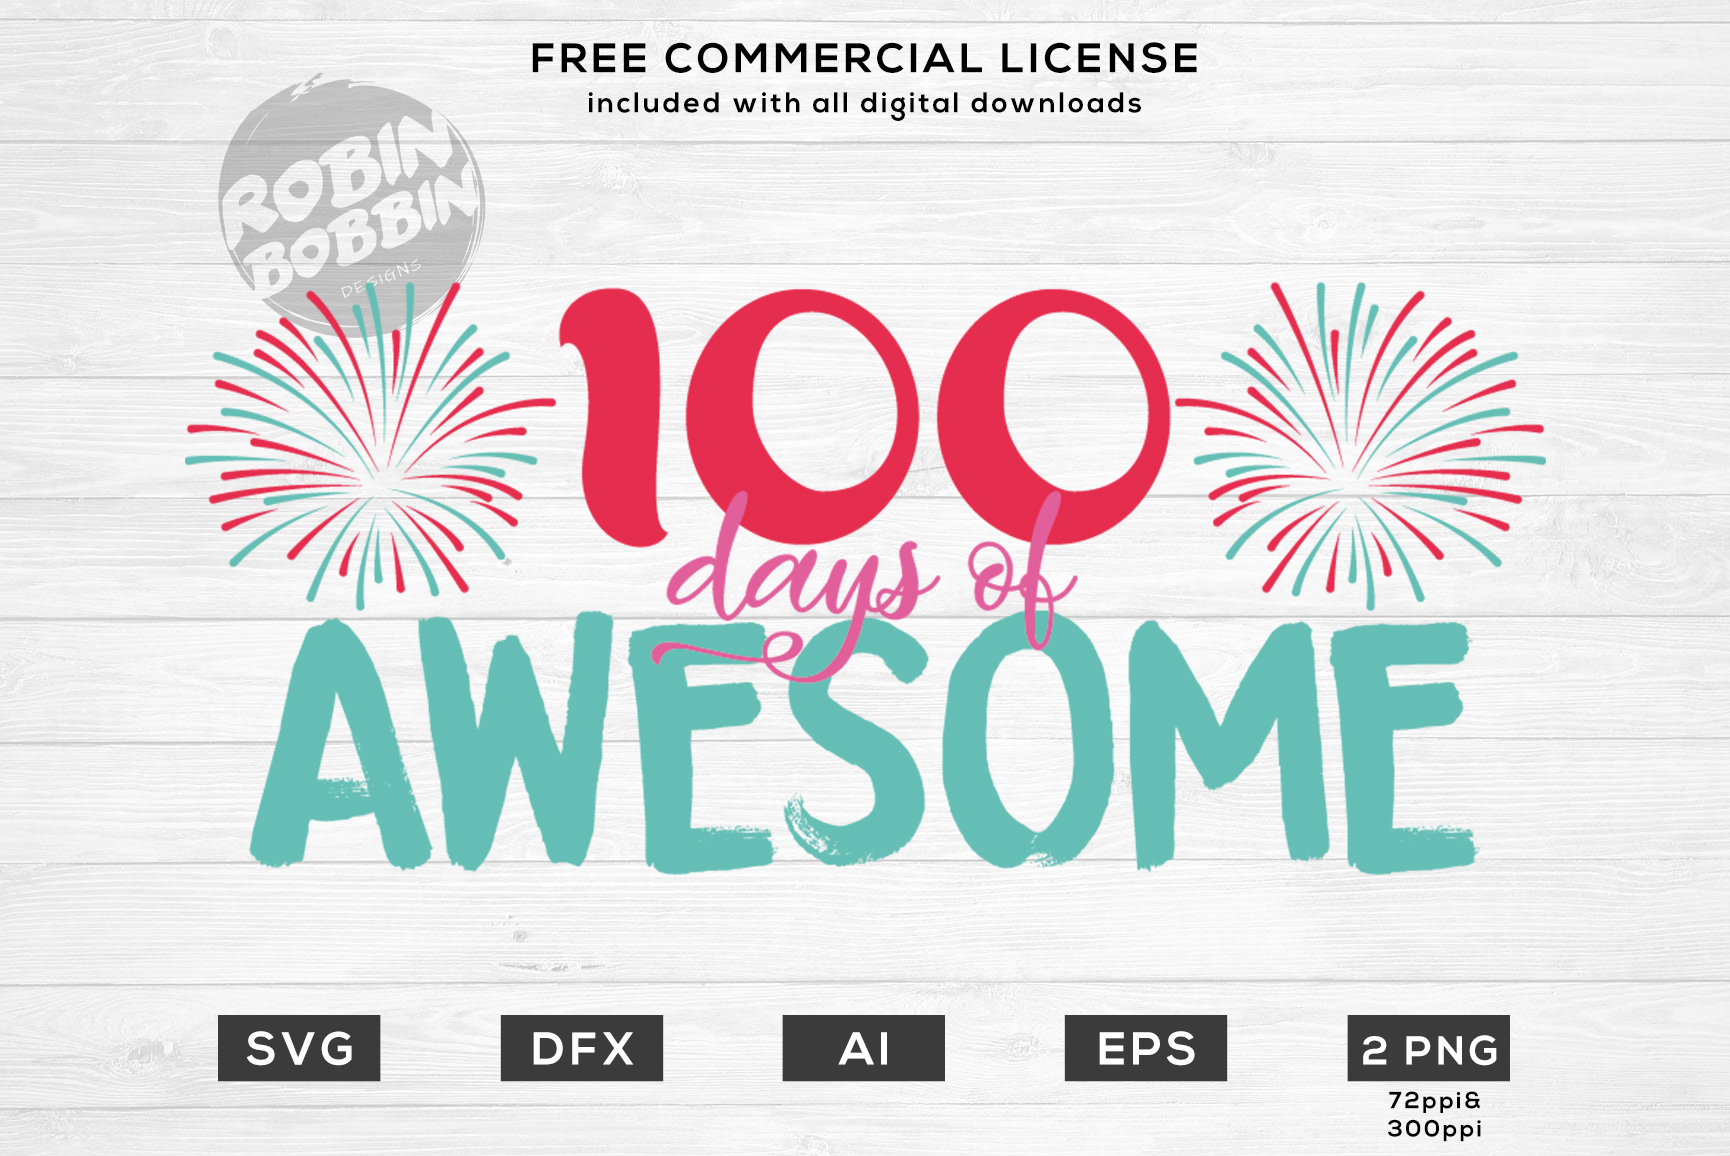 100 Days of Awesome Design for T-Shirt, Hoodies, Mugs example image 1